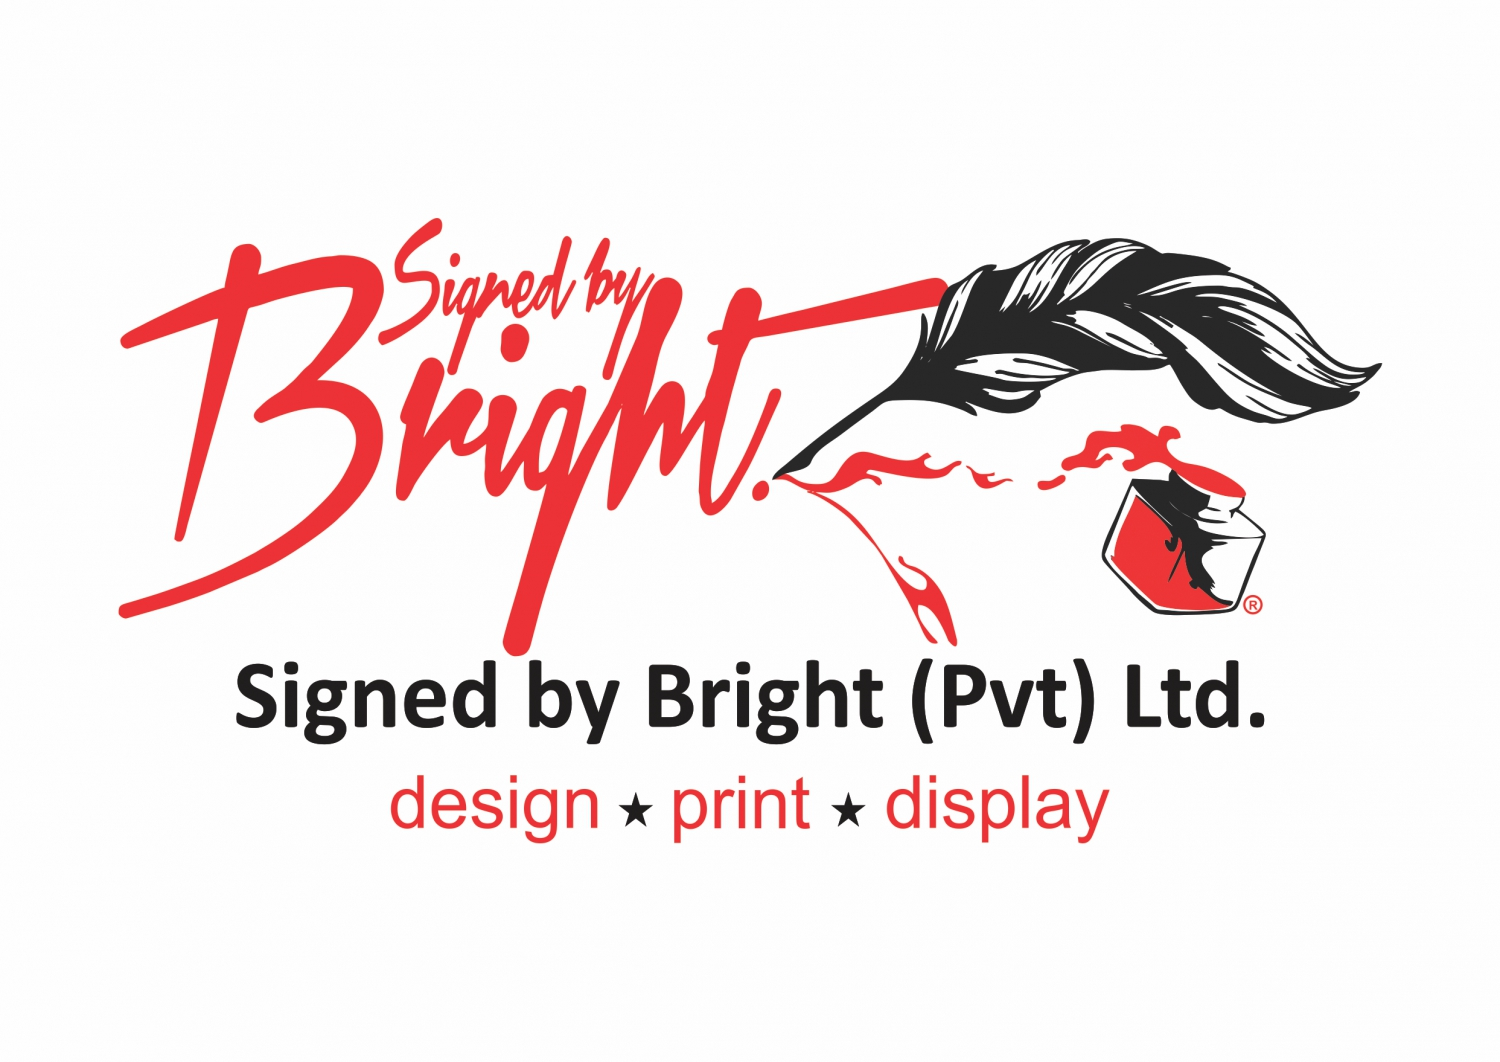 SIGNED BY BRIGHT P/L